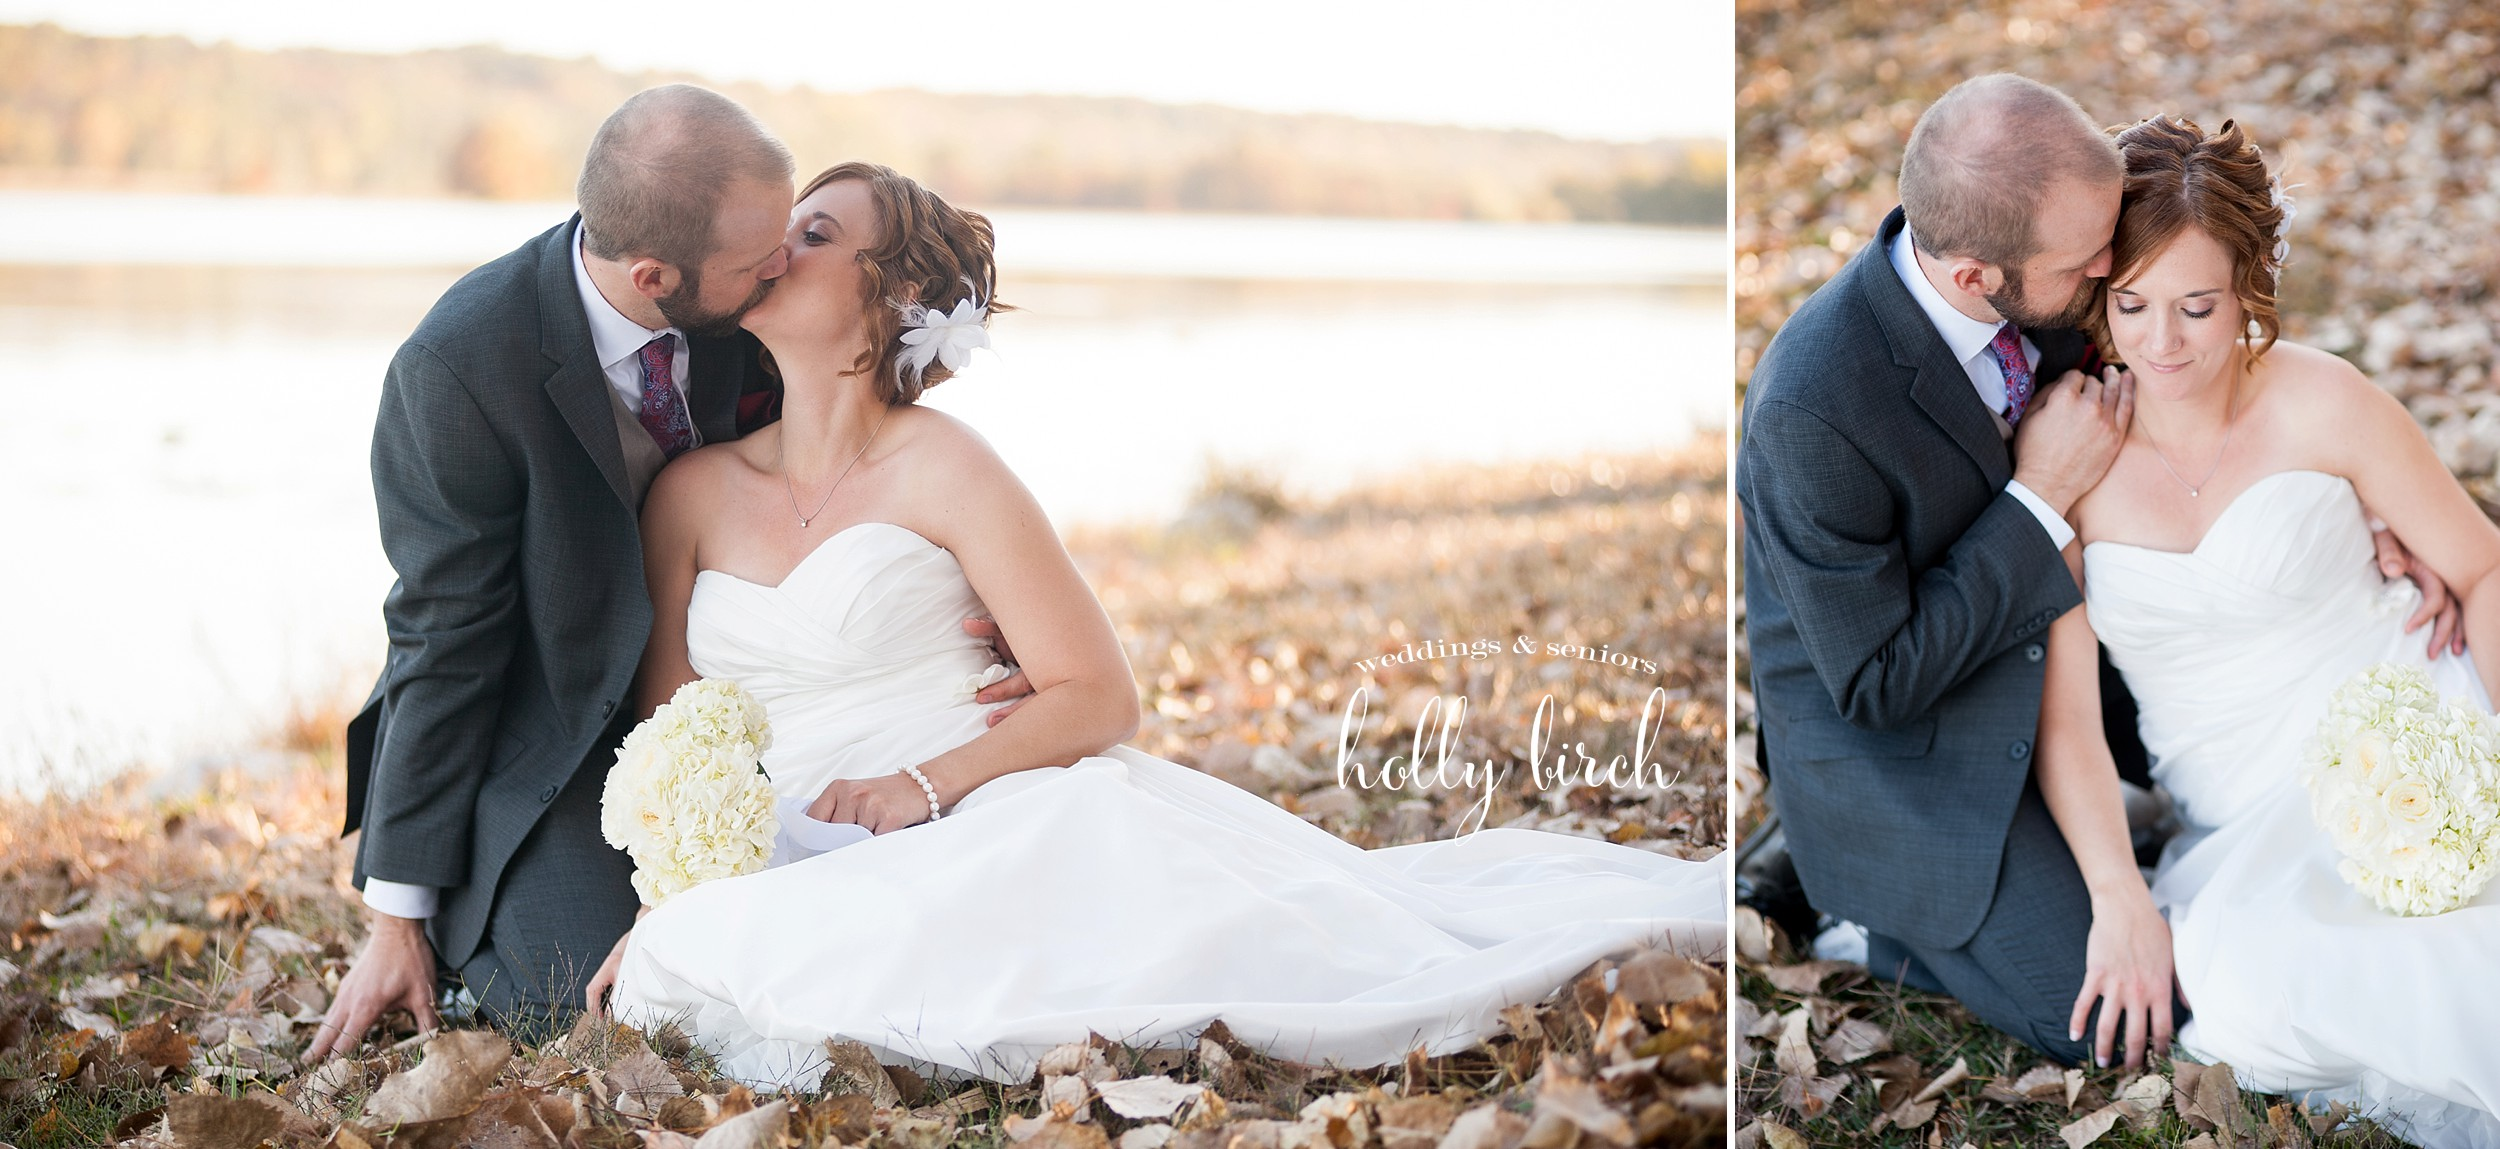 wedding photos with fall autumn leaves